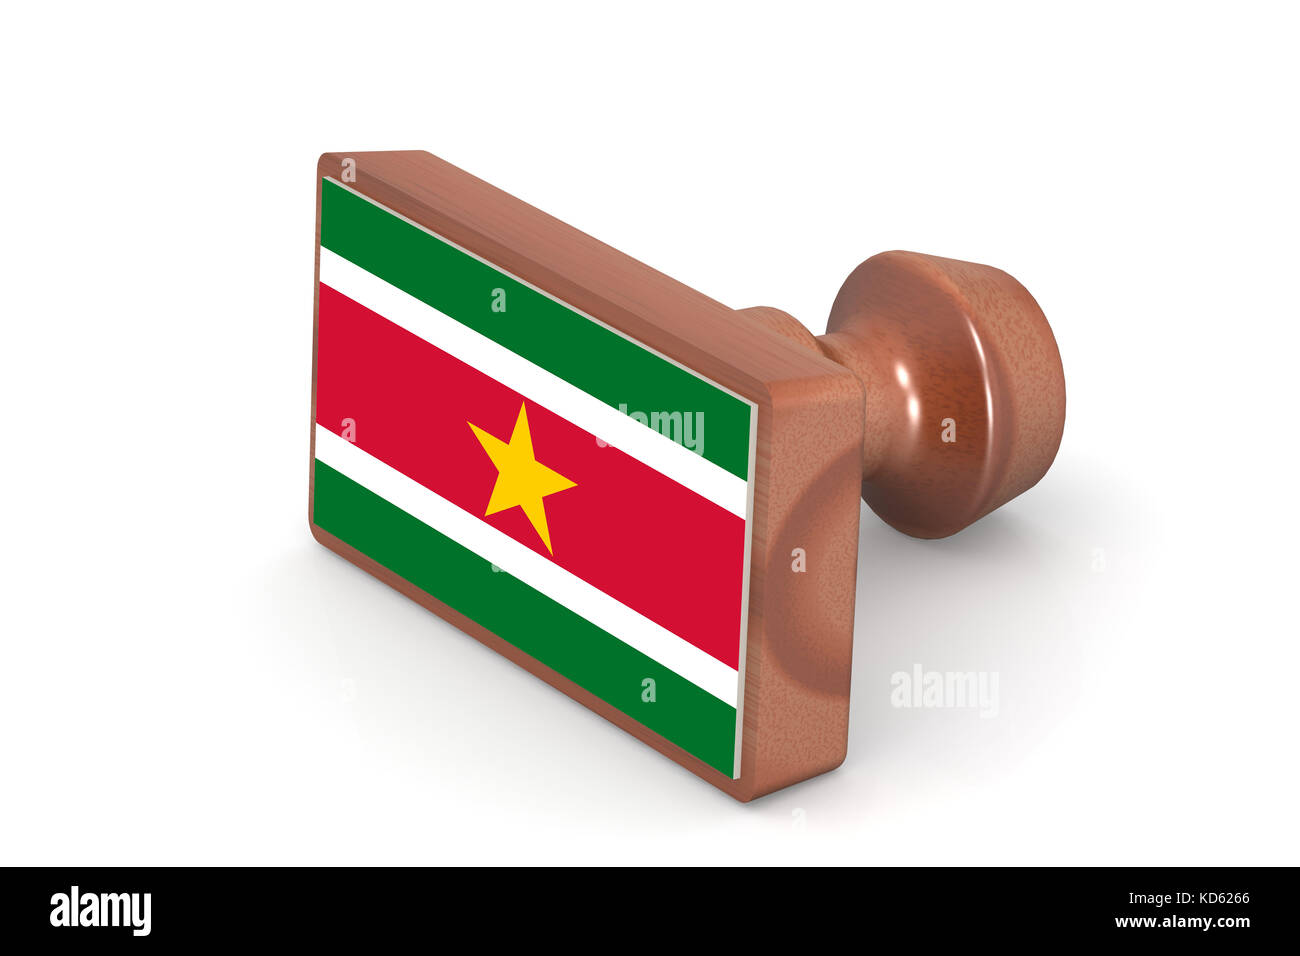 Wooden stamp with Suriname flag image with hi-res rendered artwork that could be used for any graphic design. - Stock Image